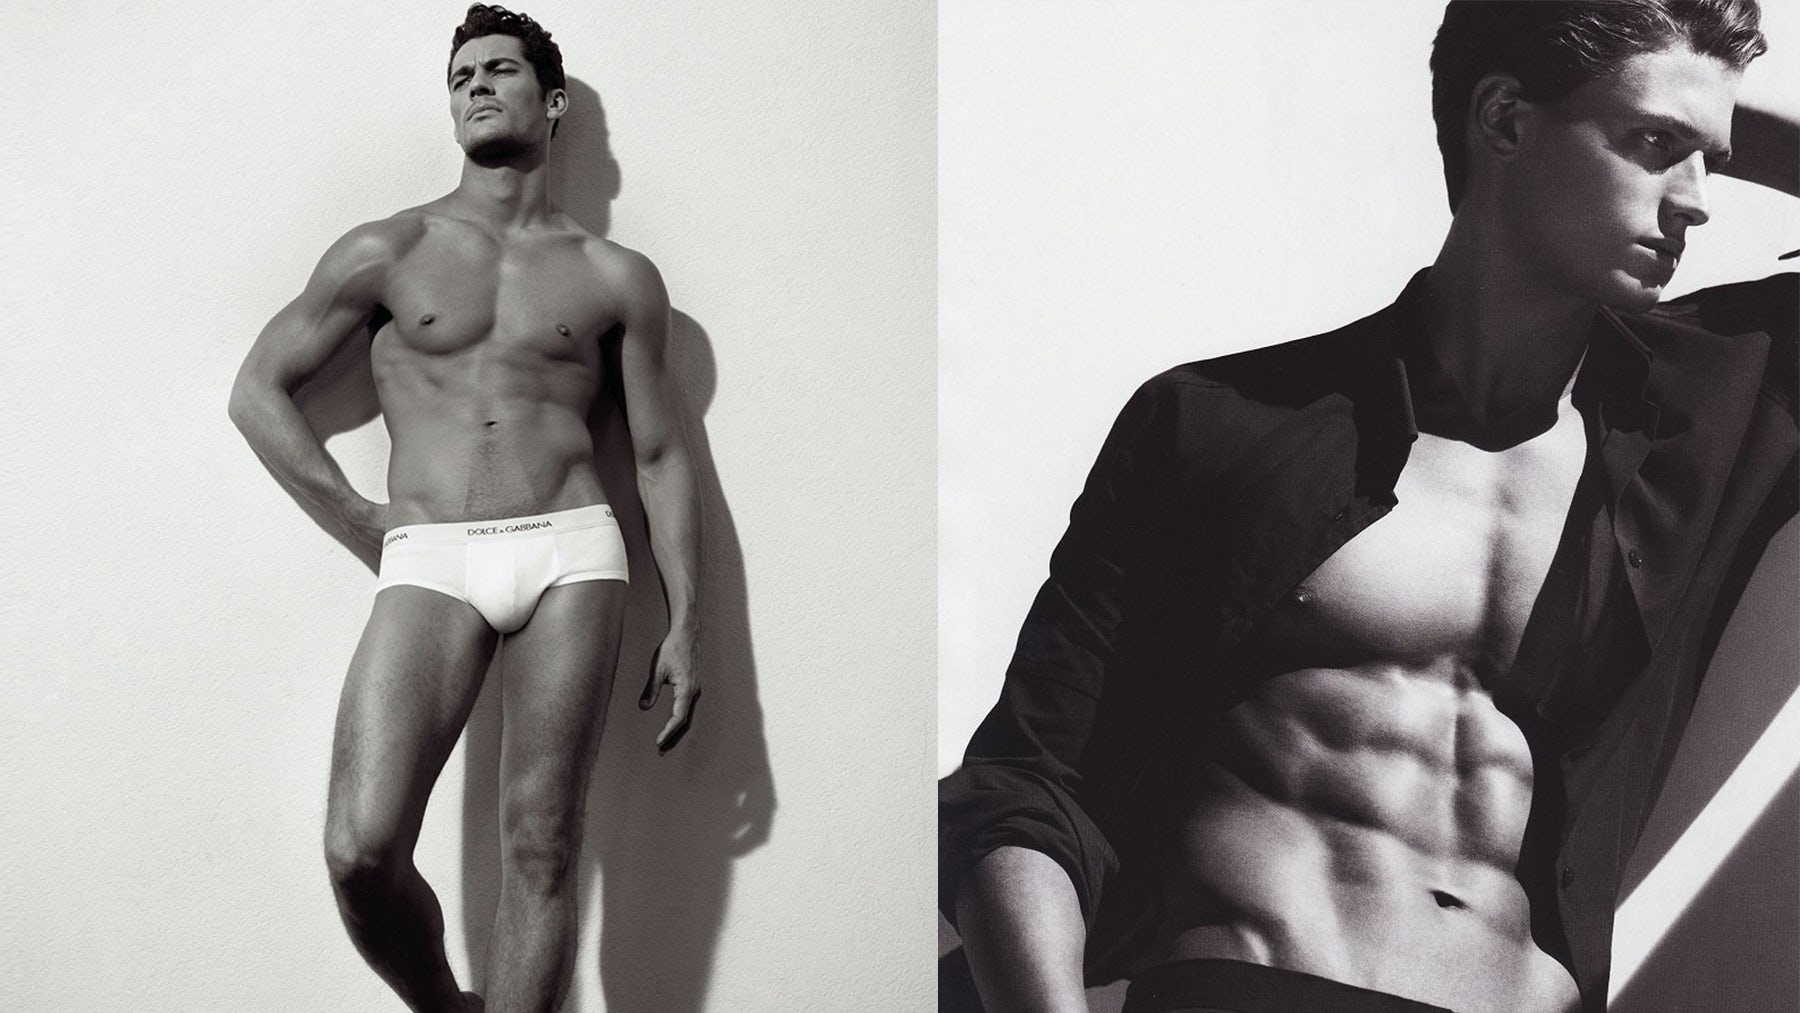 David Gandy for Dolce & Gabbana and Garrett Neff for Calvin Klein | Source: BoF